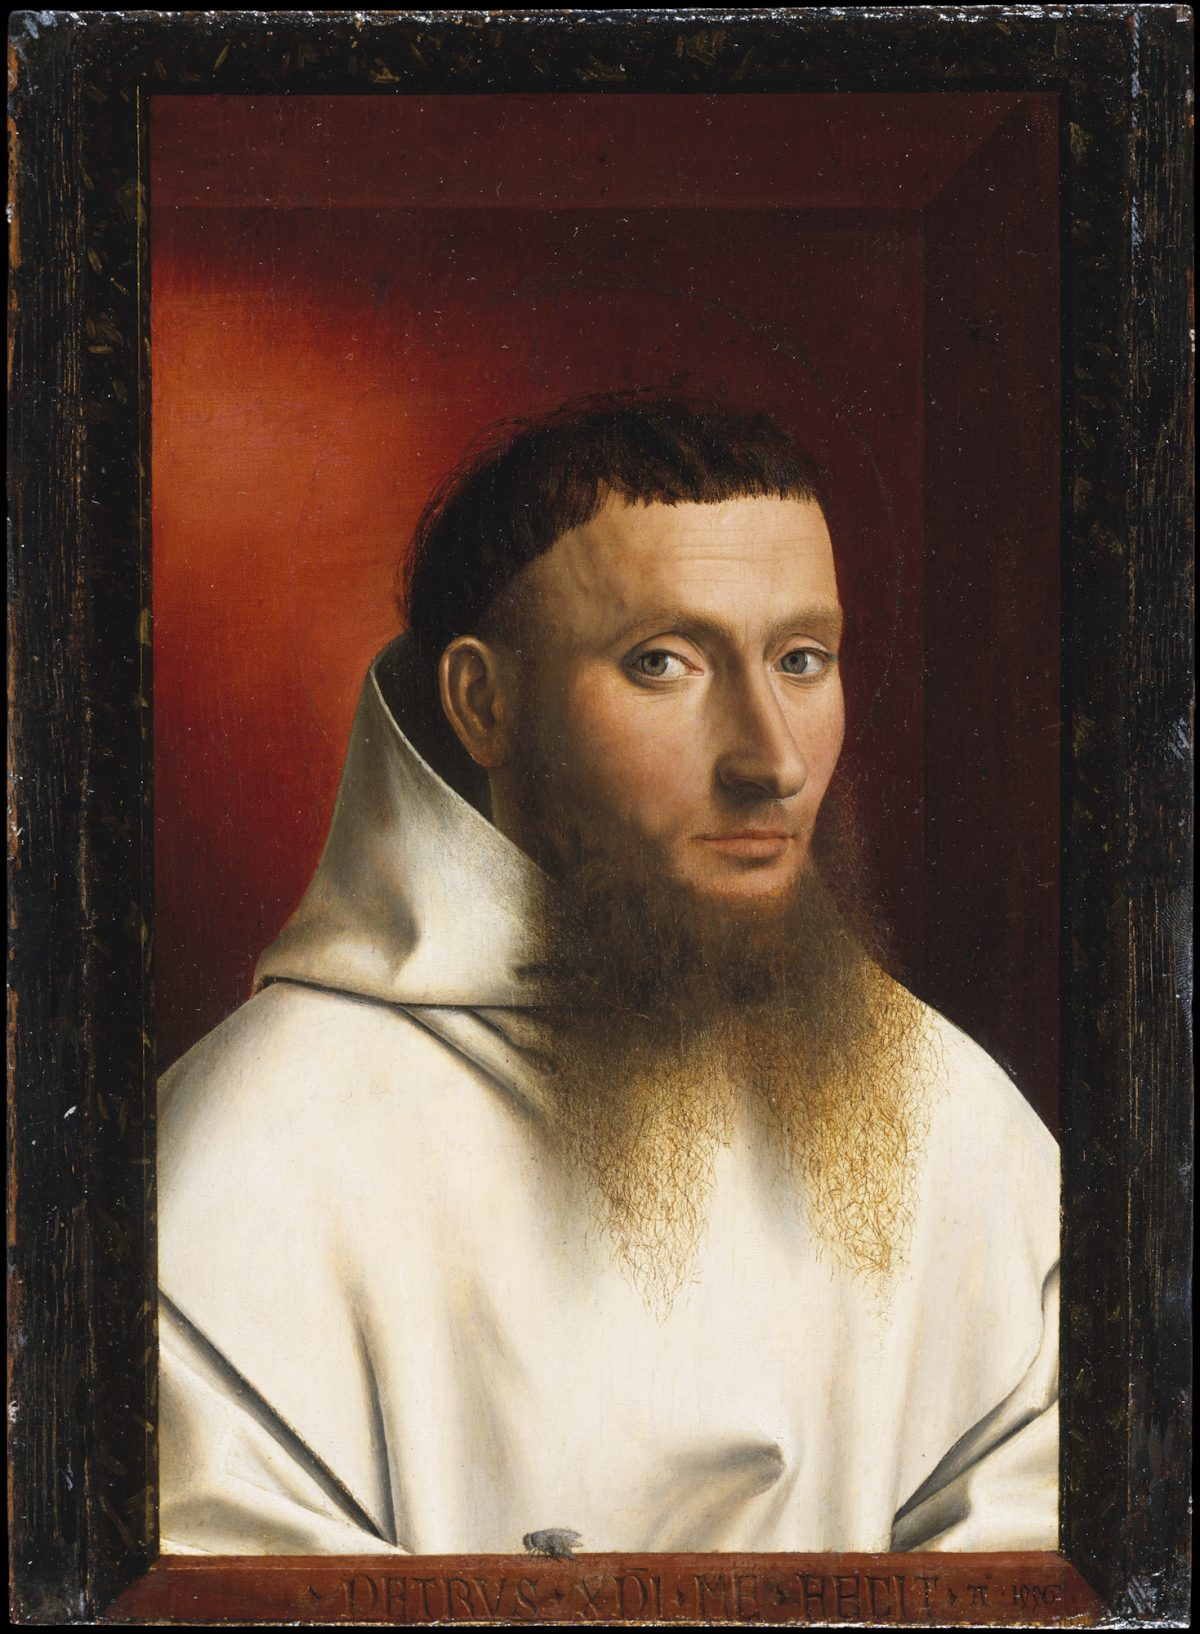 """""""Portrait of a Carthusian Lay Brother,"""" 1446, by Petrus Christus. Oil on wood, 11 1/2 inches by 8 1/2 inches, The Jules Bache Collection, The Metropolitan Museum of Art. (Courtesy of The Frick Collection)"""